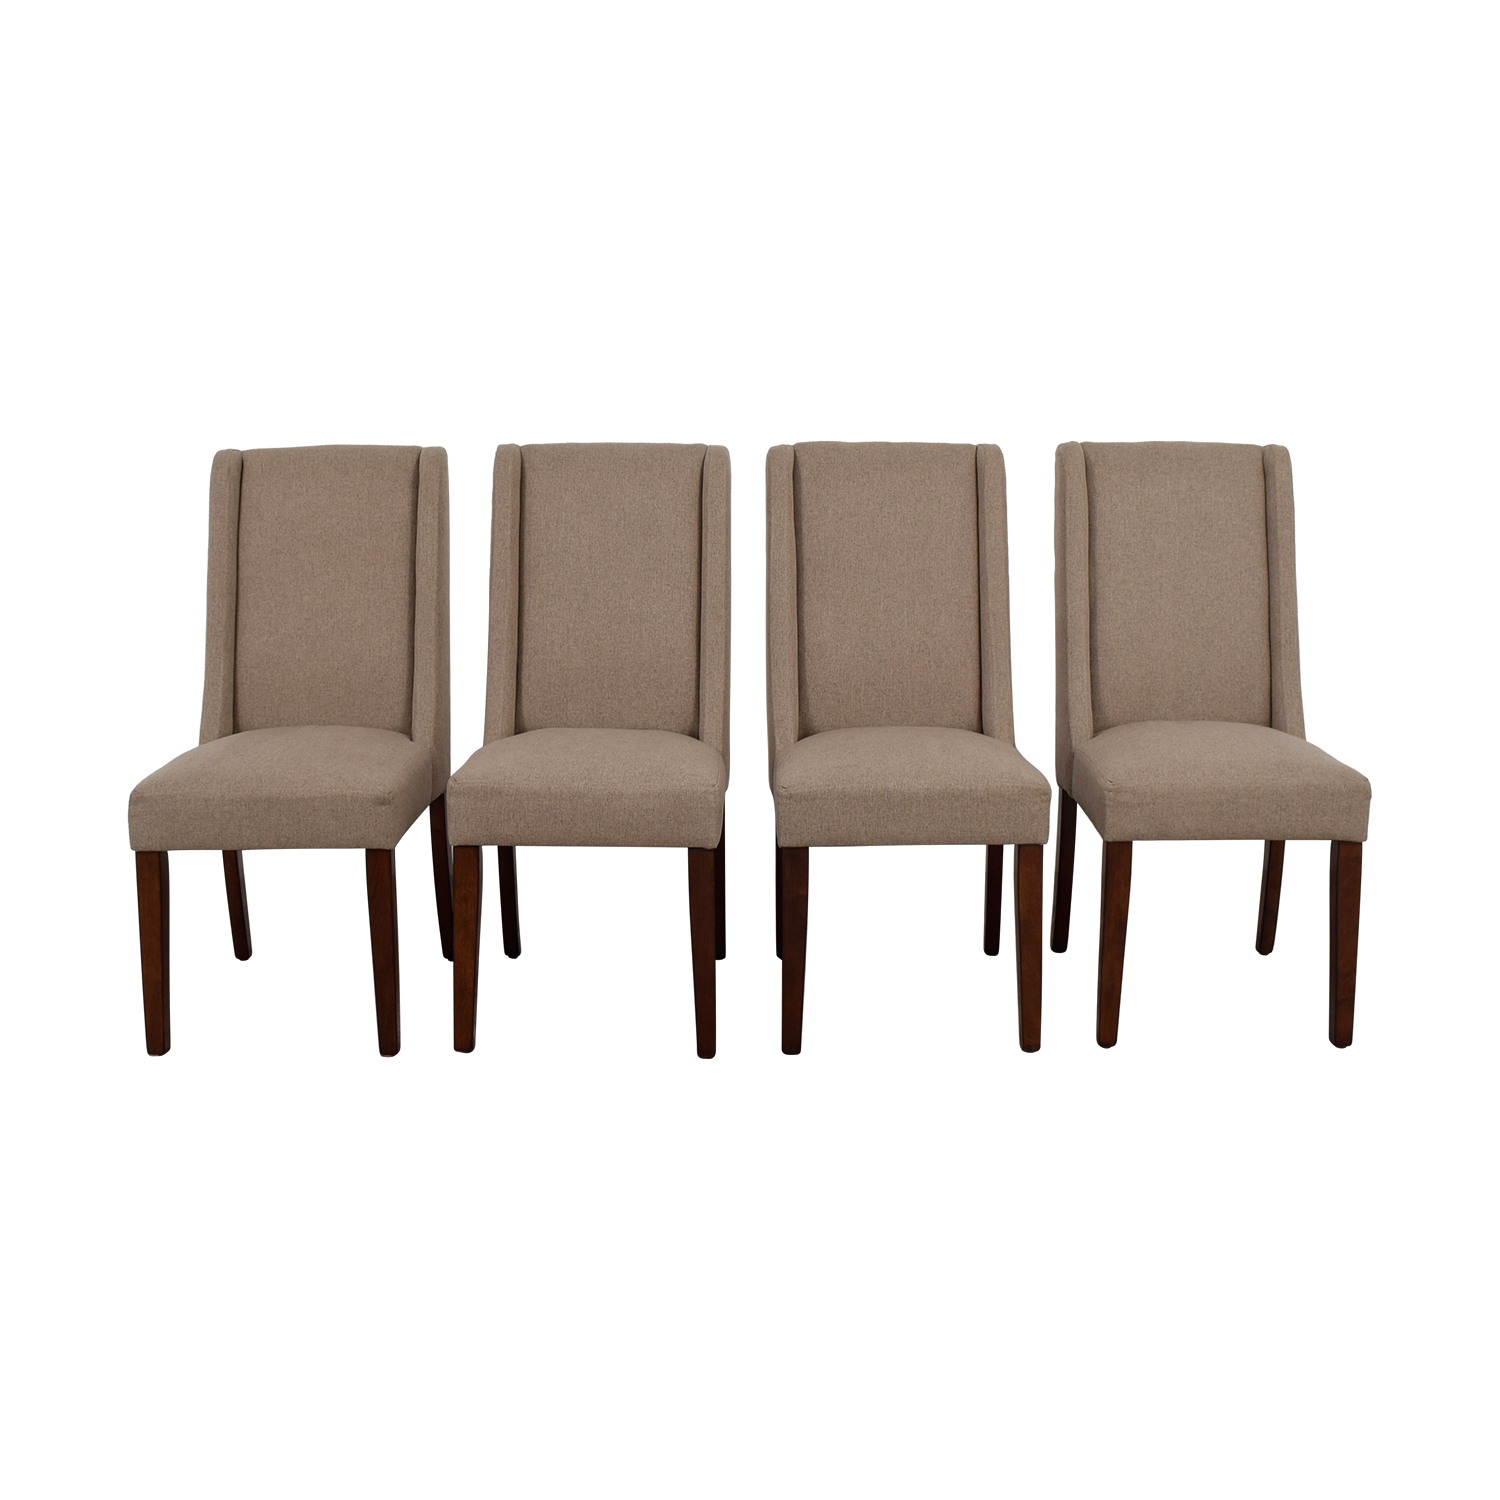 Darby Home Co Tan Upholstered Dining Chairs Online